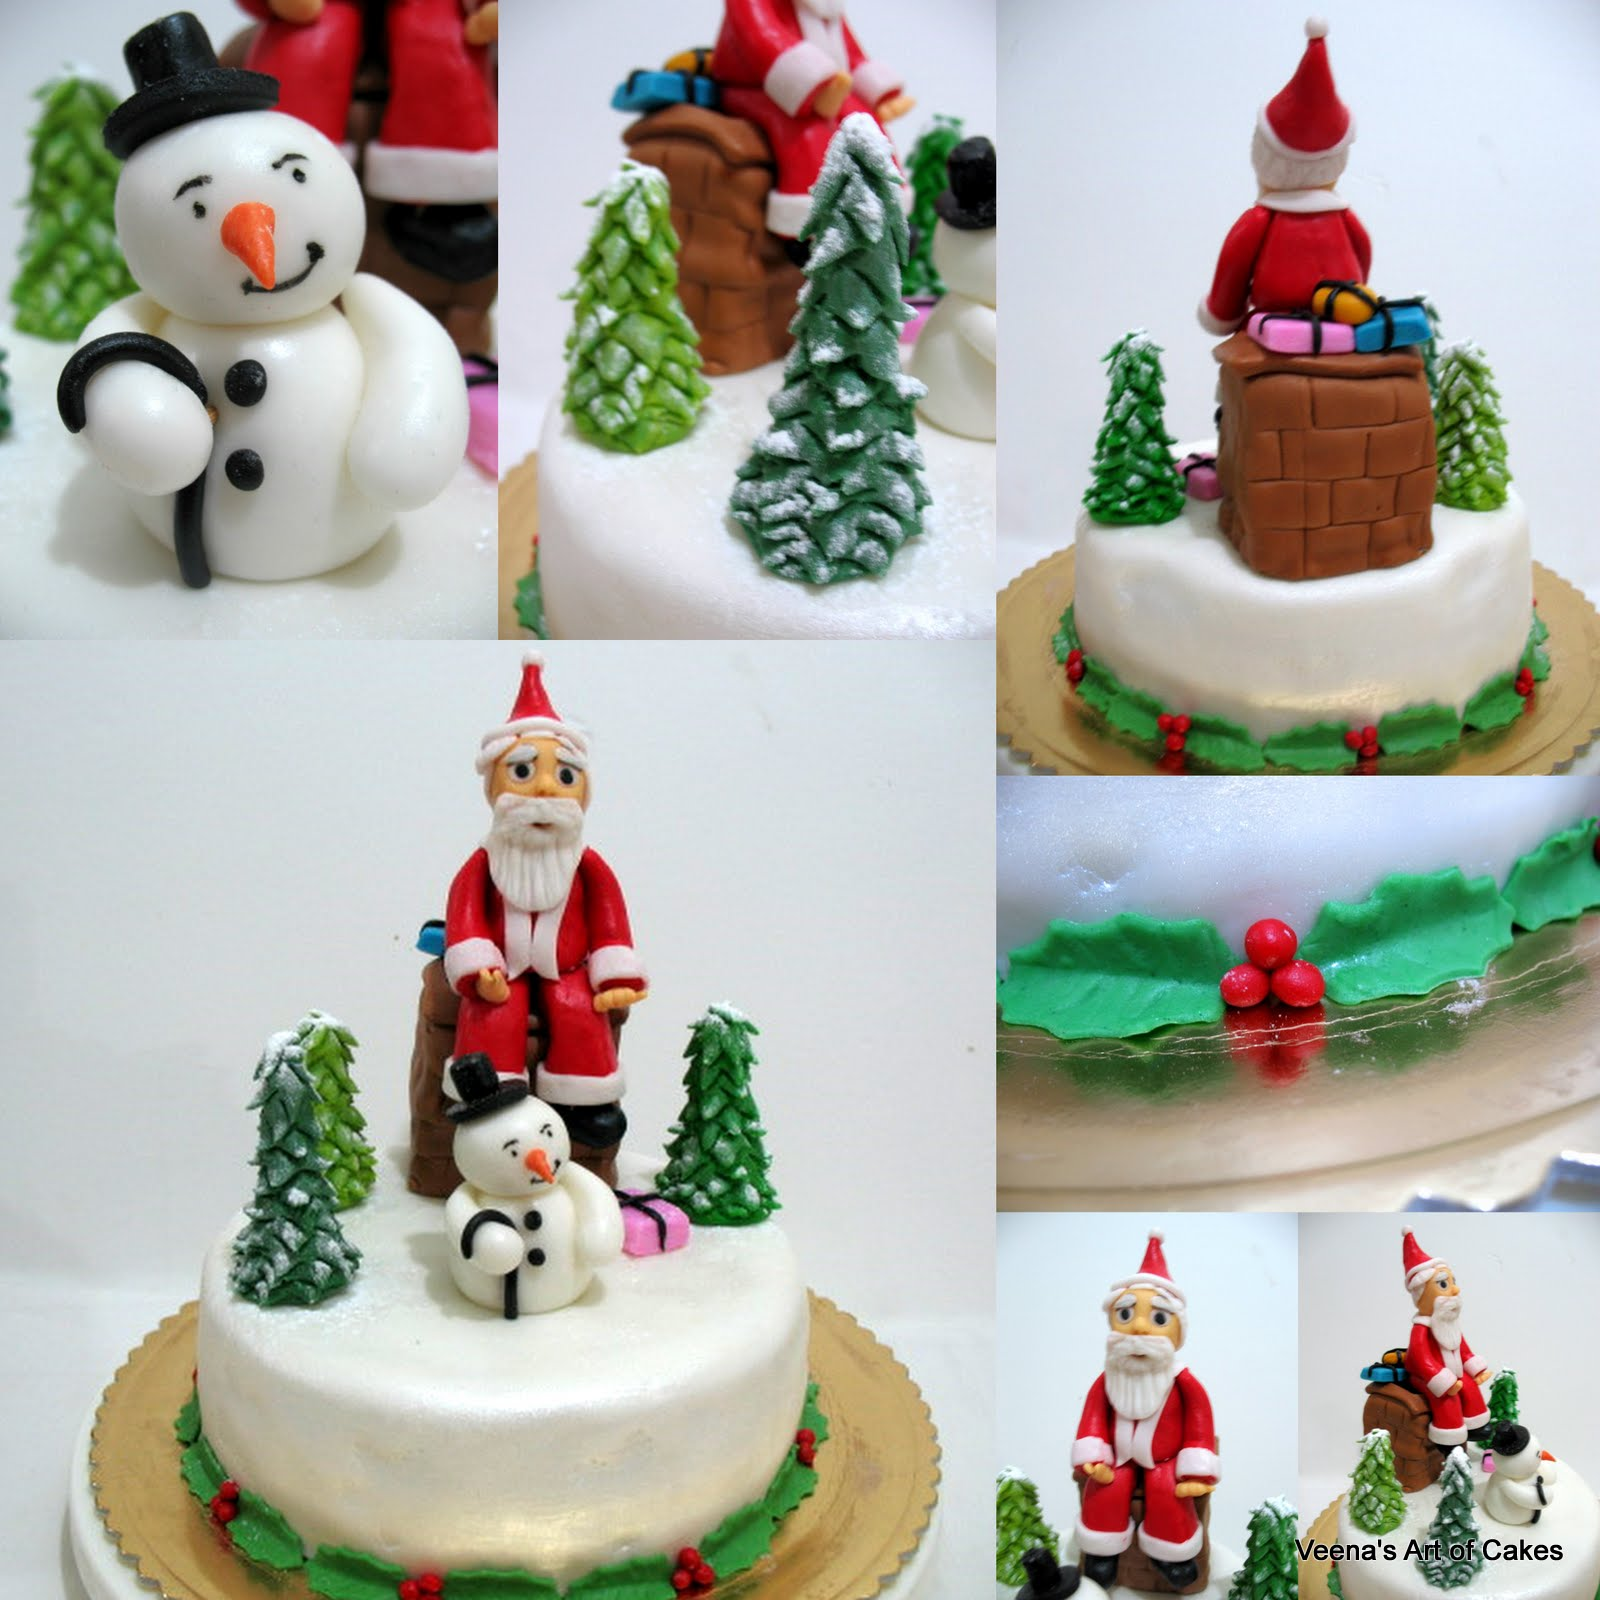 How to make christmas cake - How To Make A Christmas Cake